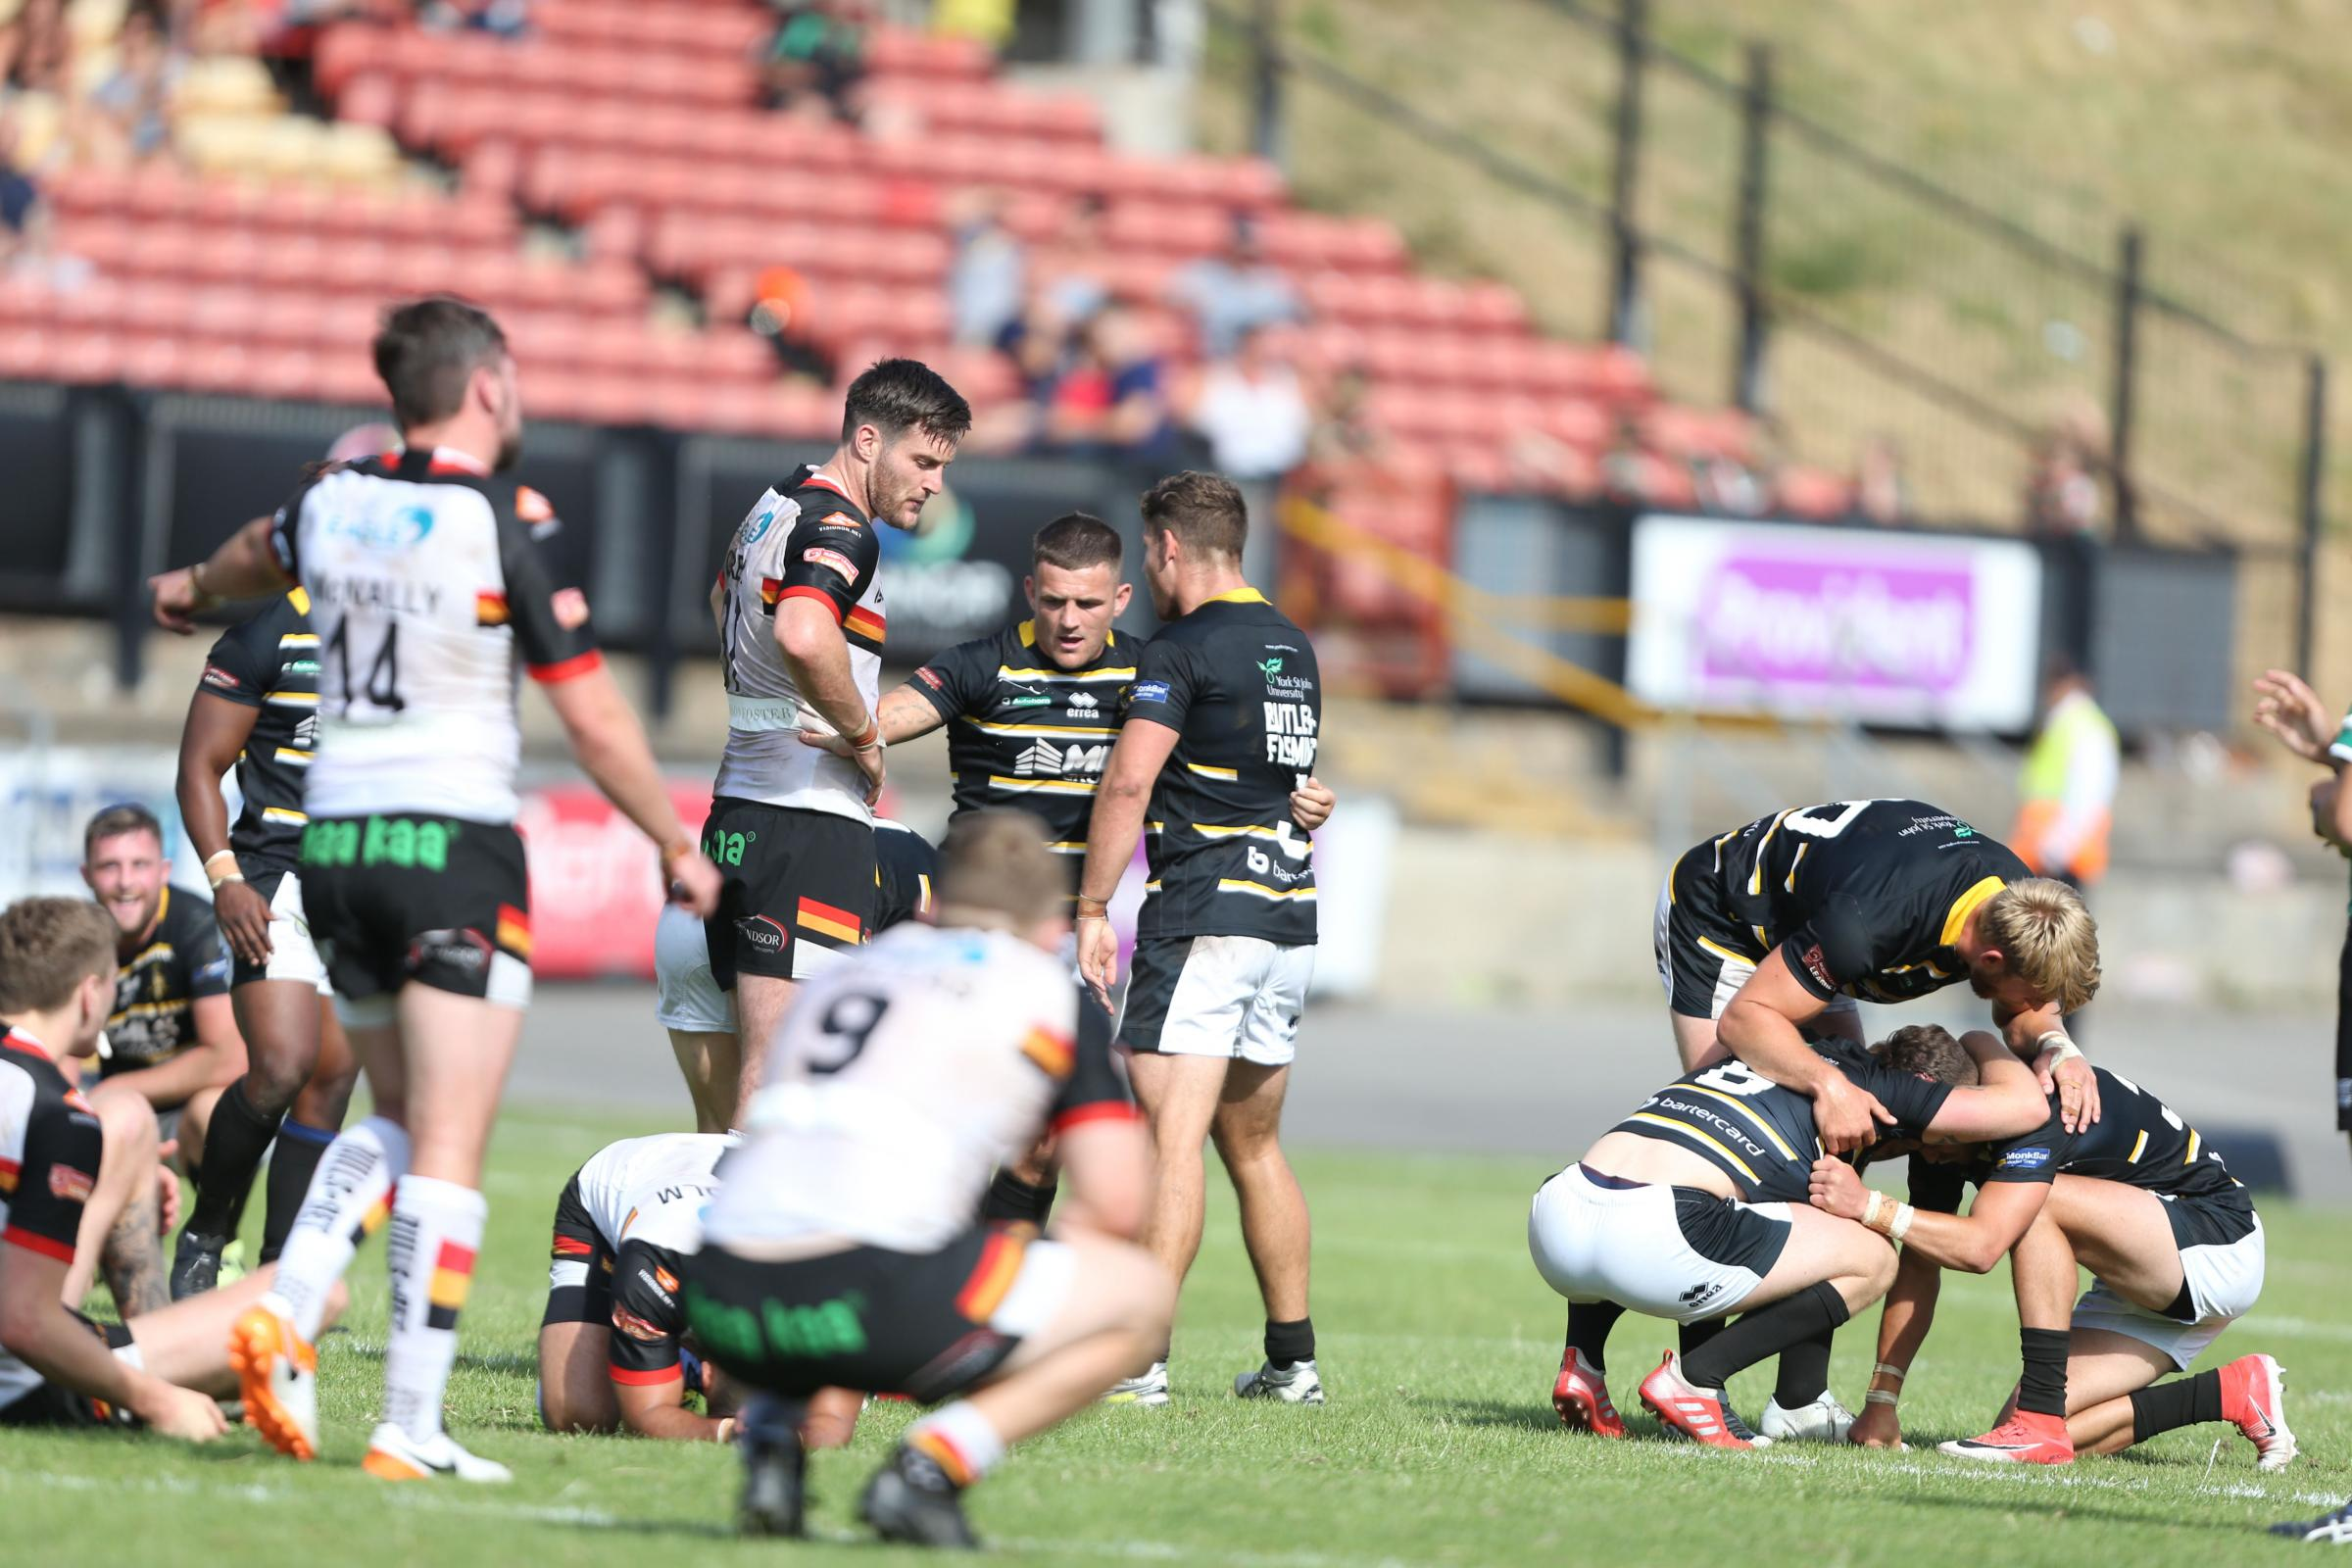 York City Knights celebrate while Bradford Bulls players look dejected following the Knights' nailbiting victory at Odsal in July during the two teams' battle for the Betfred League One title. Picture: Gordon Clayton